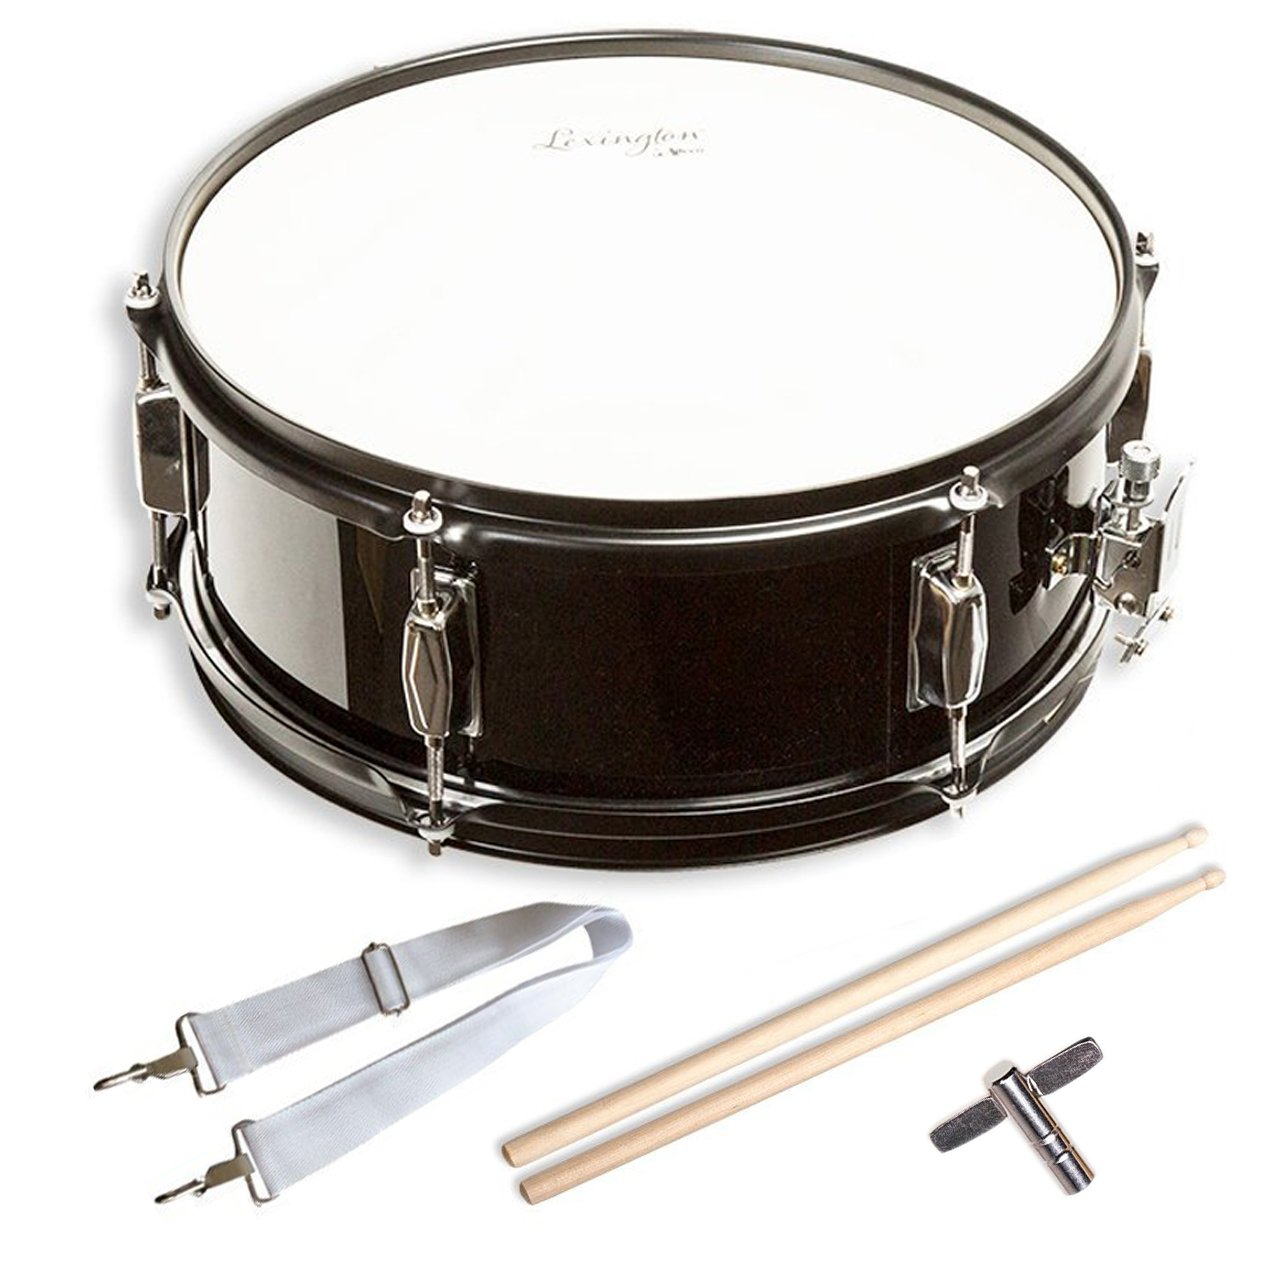 Snare Drum Set Student Steel Shell 14'' X 5.5'', Includes Drum Key, Drumsticks and Strap